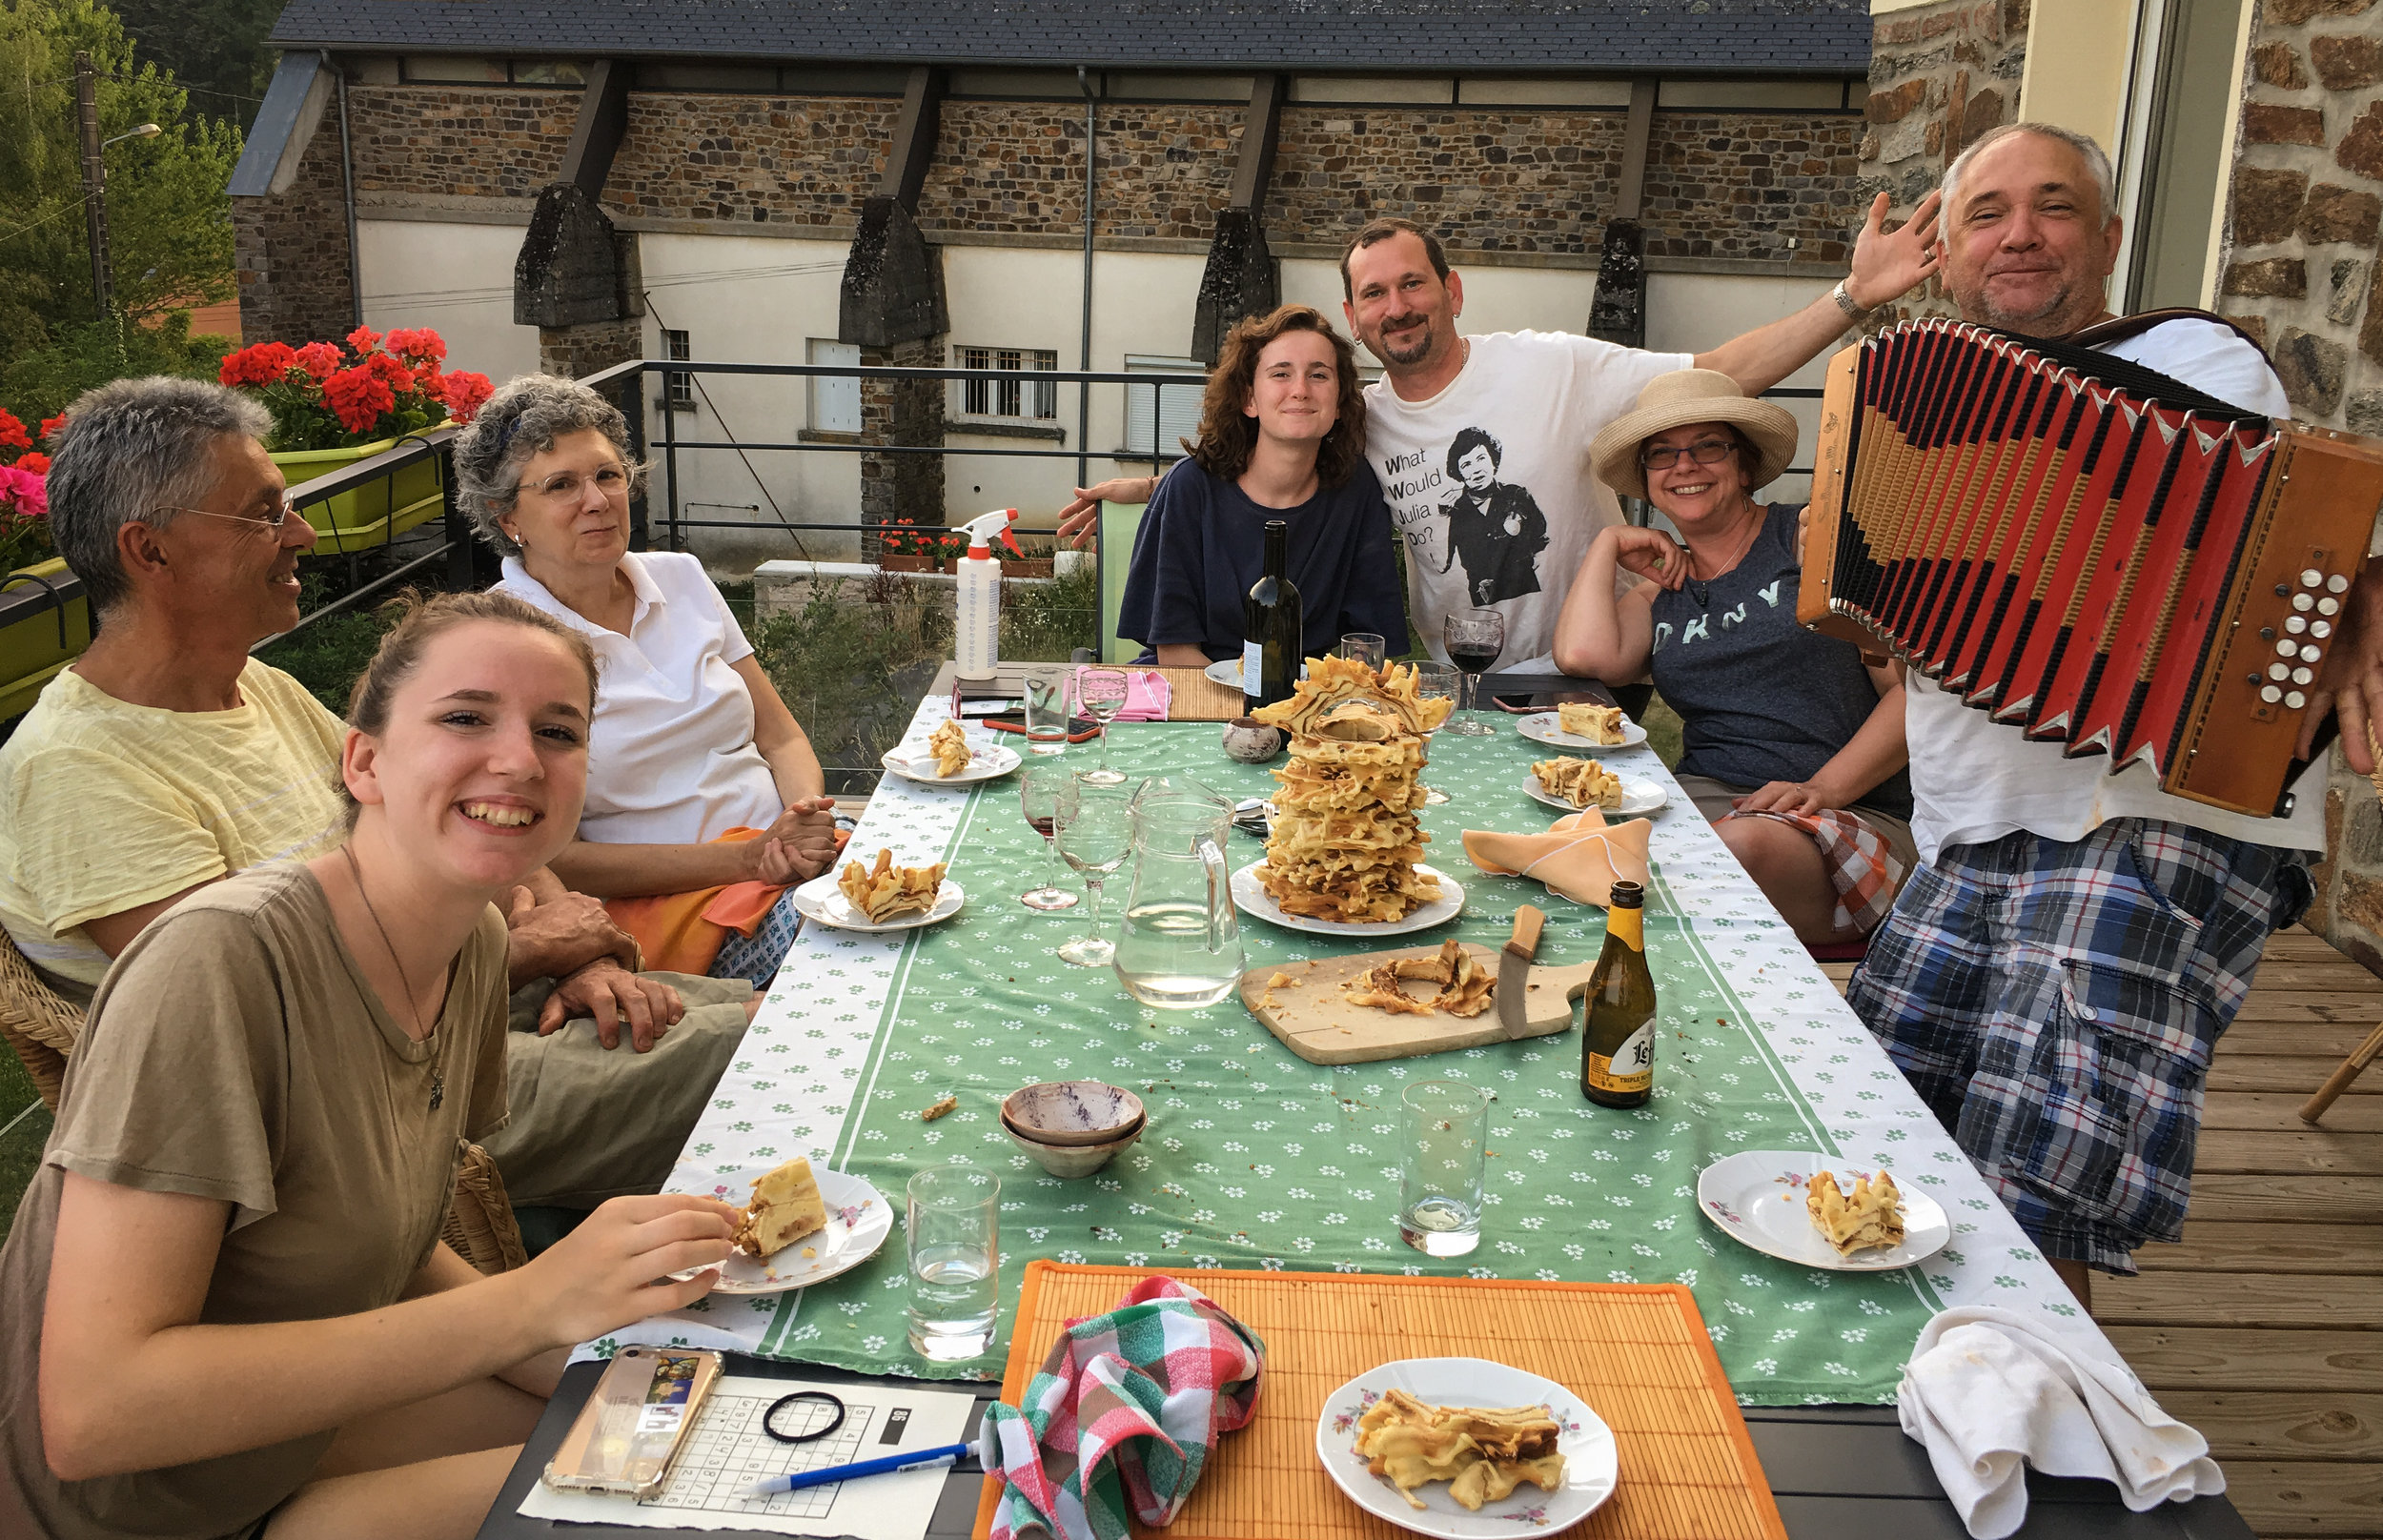 Last day and fun times for the family at Baraqueville home. Tasting the gâteau à la broche freshly made home, getting a personal concert from Christian the friend musician, and spending more time with Thierry the friend potter.